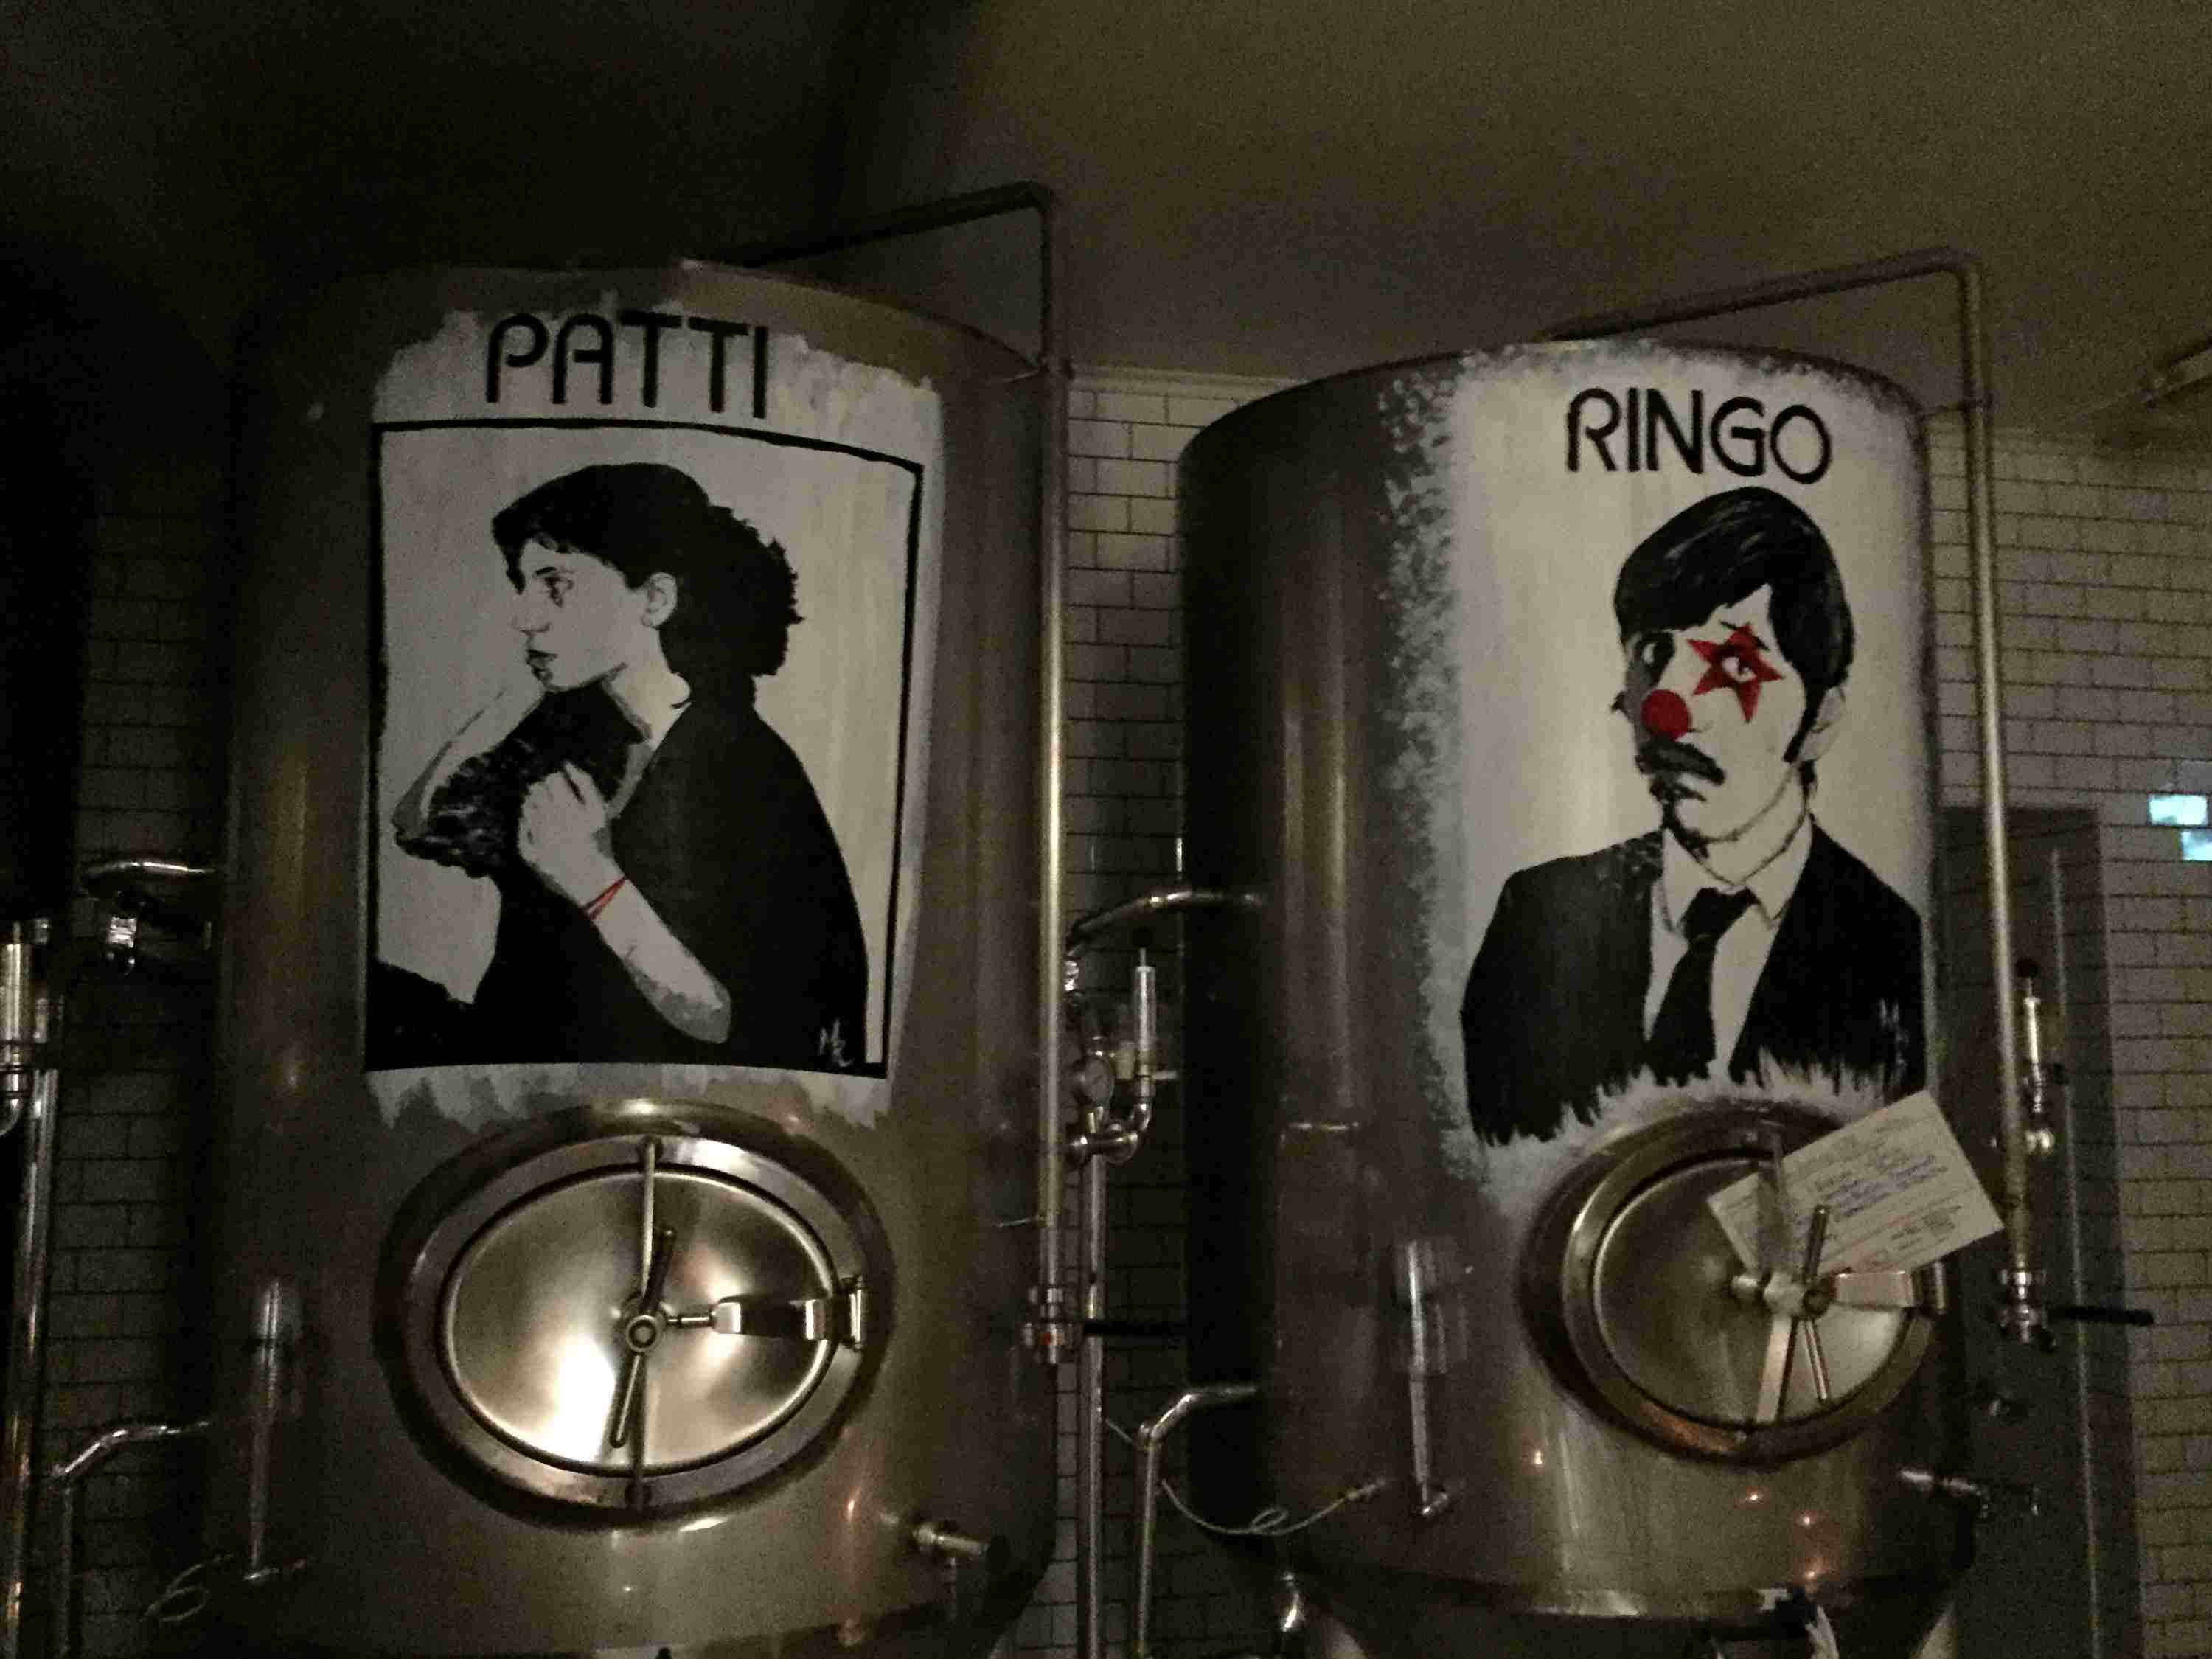 Two barrels of beer with faces drawn on each